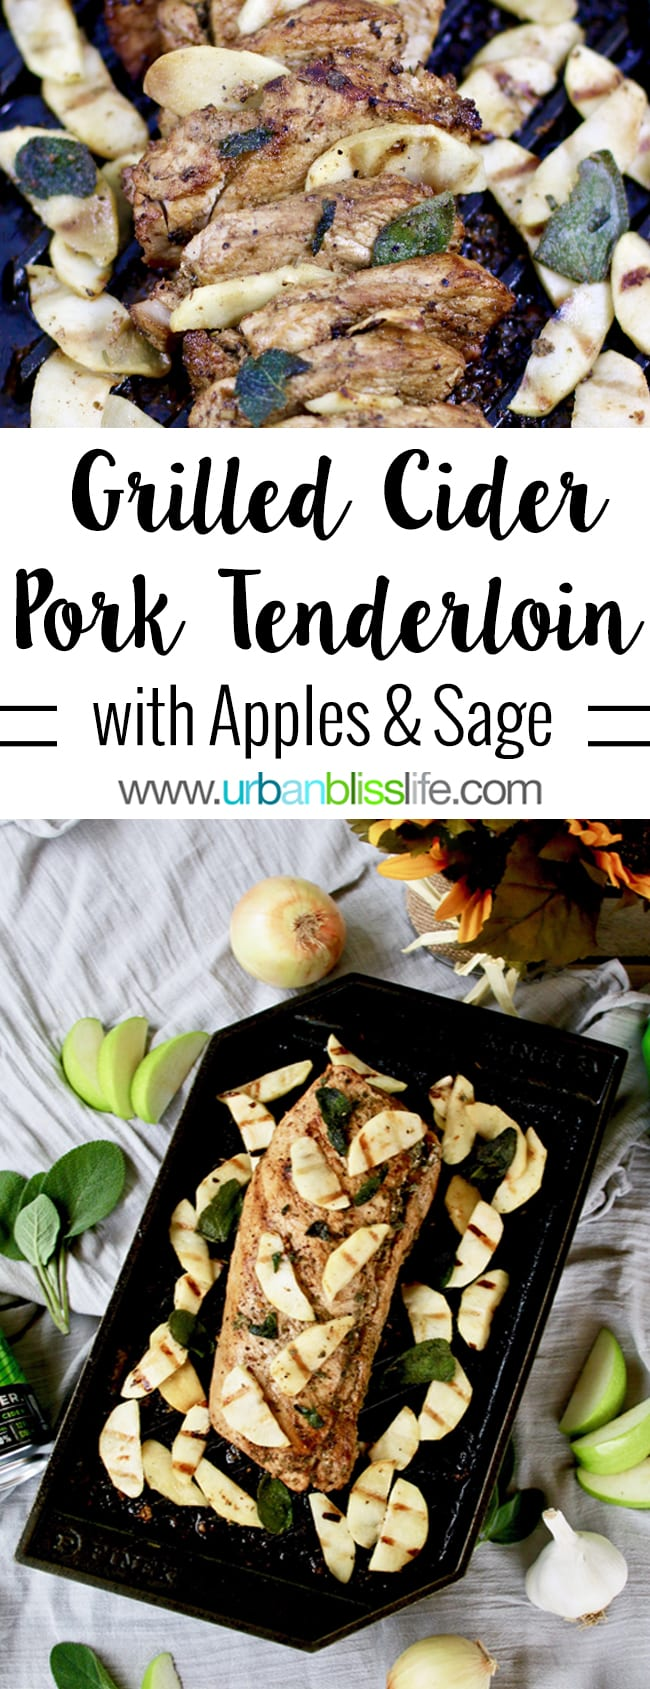 Grilled Hard Cider Pork Tenderloin with Apples and Sage recipe on UrbanBlissLife.com